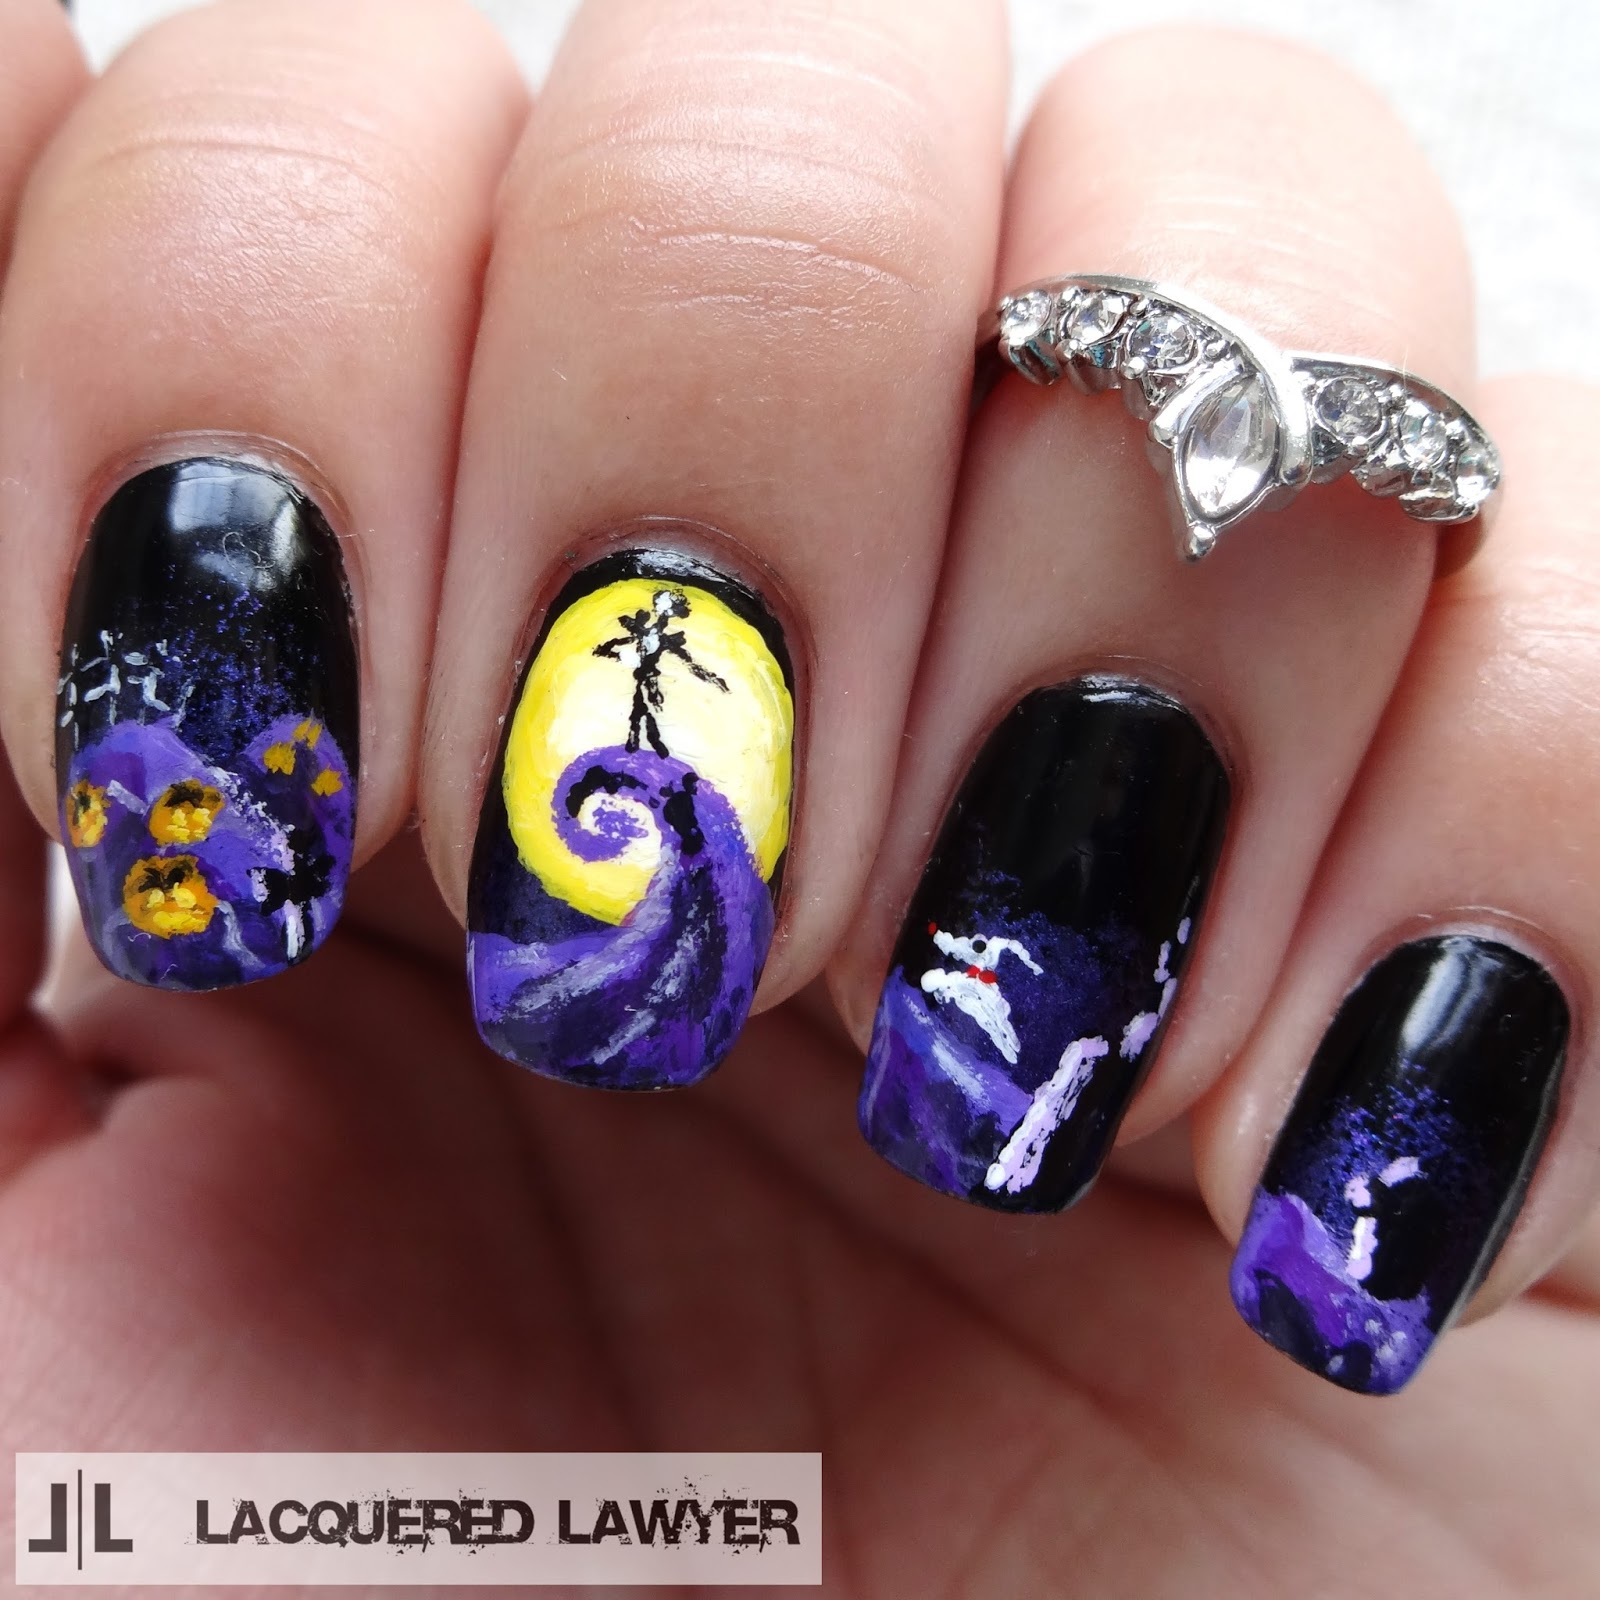 Lacquered Lawyer | Nail Art Blog: The Nightmare Before Christmas